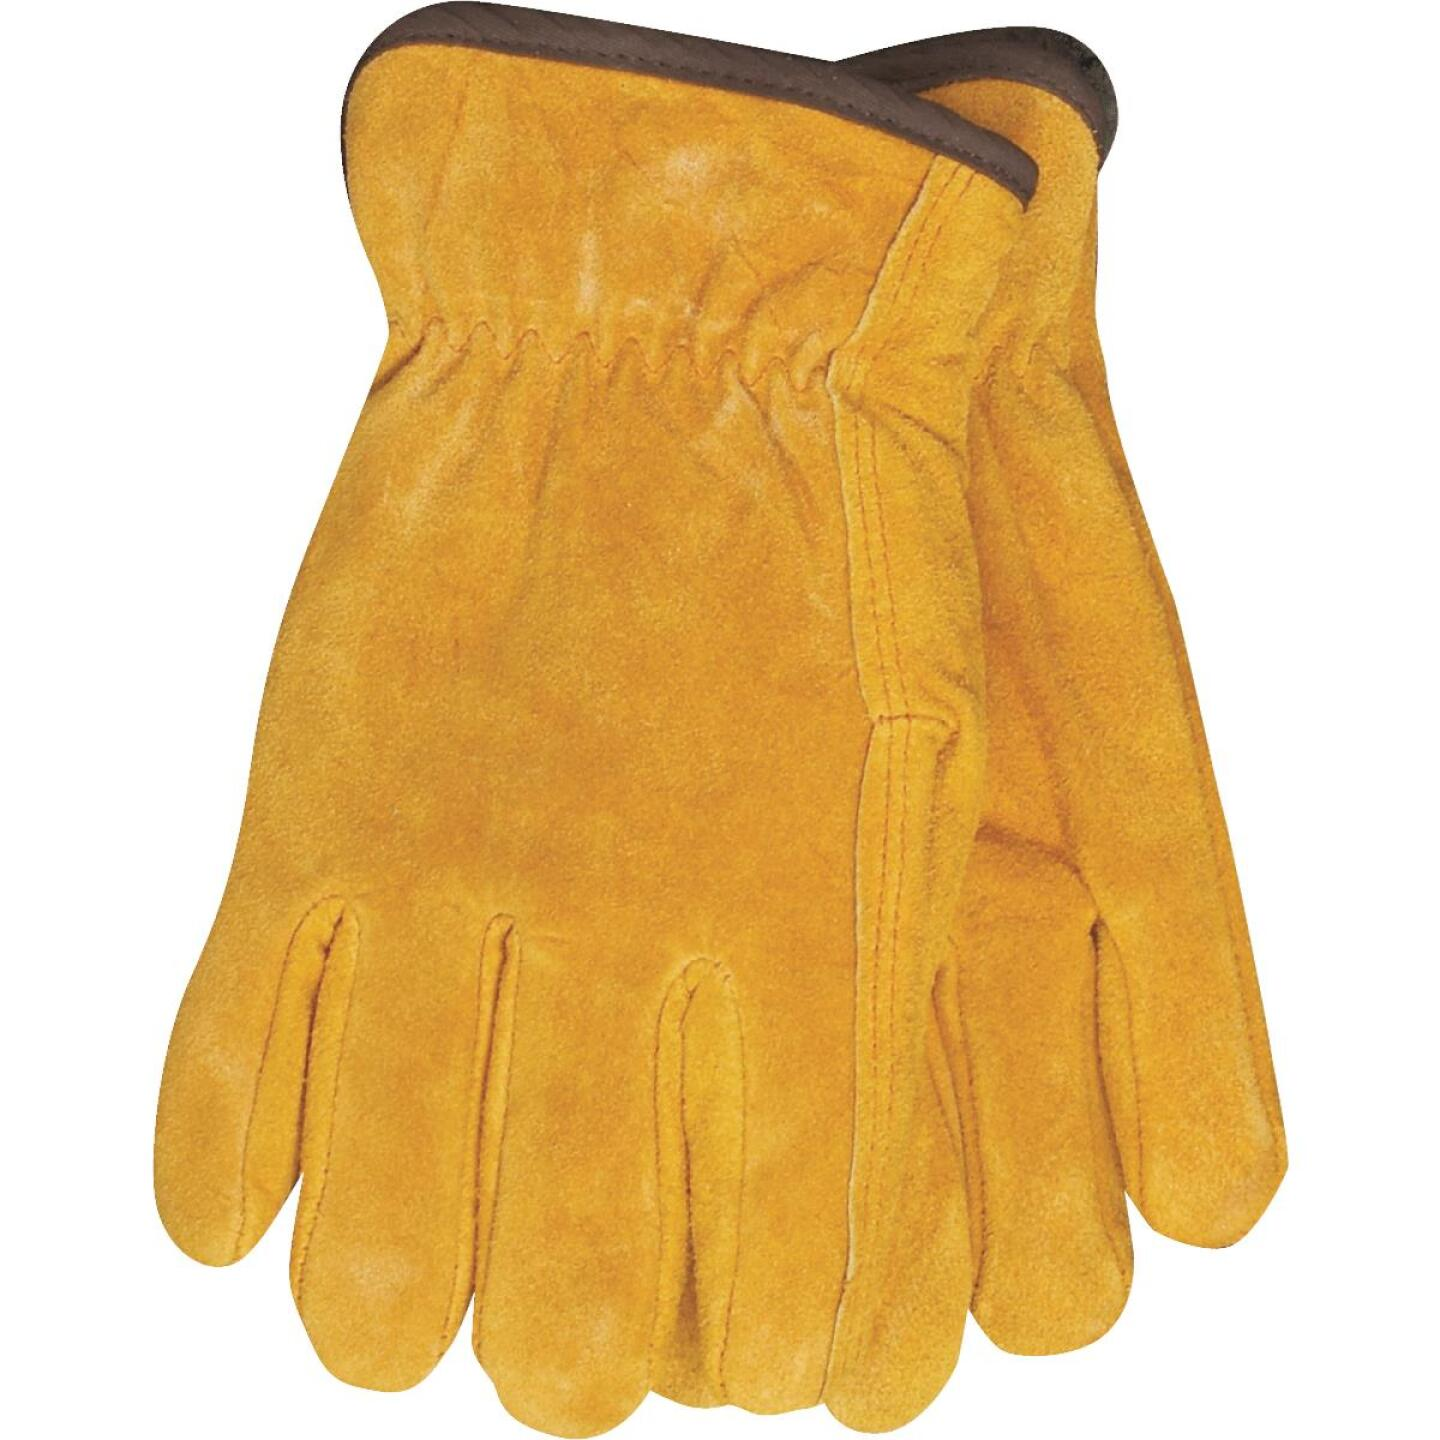 Do it Men's XL Lined Leather Winter Work Glove Image 5